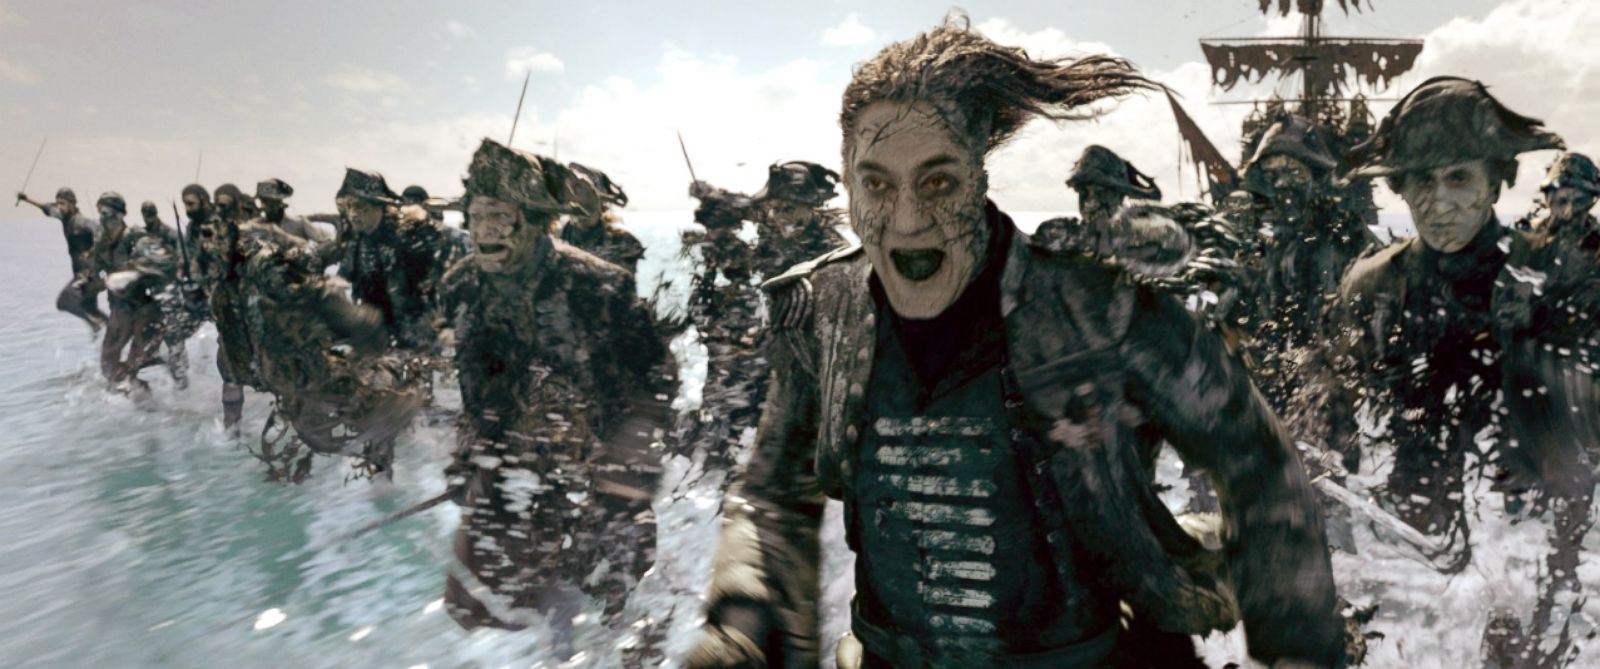 """PHOTO: Javier Bardem in """"Pirates of the Caribbean: Dead Men Tell No Tales."""""""